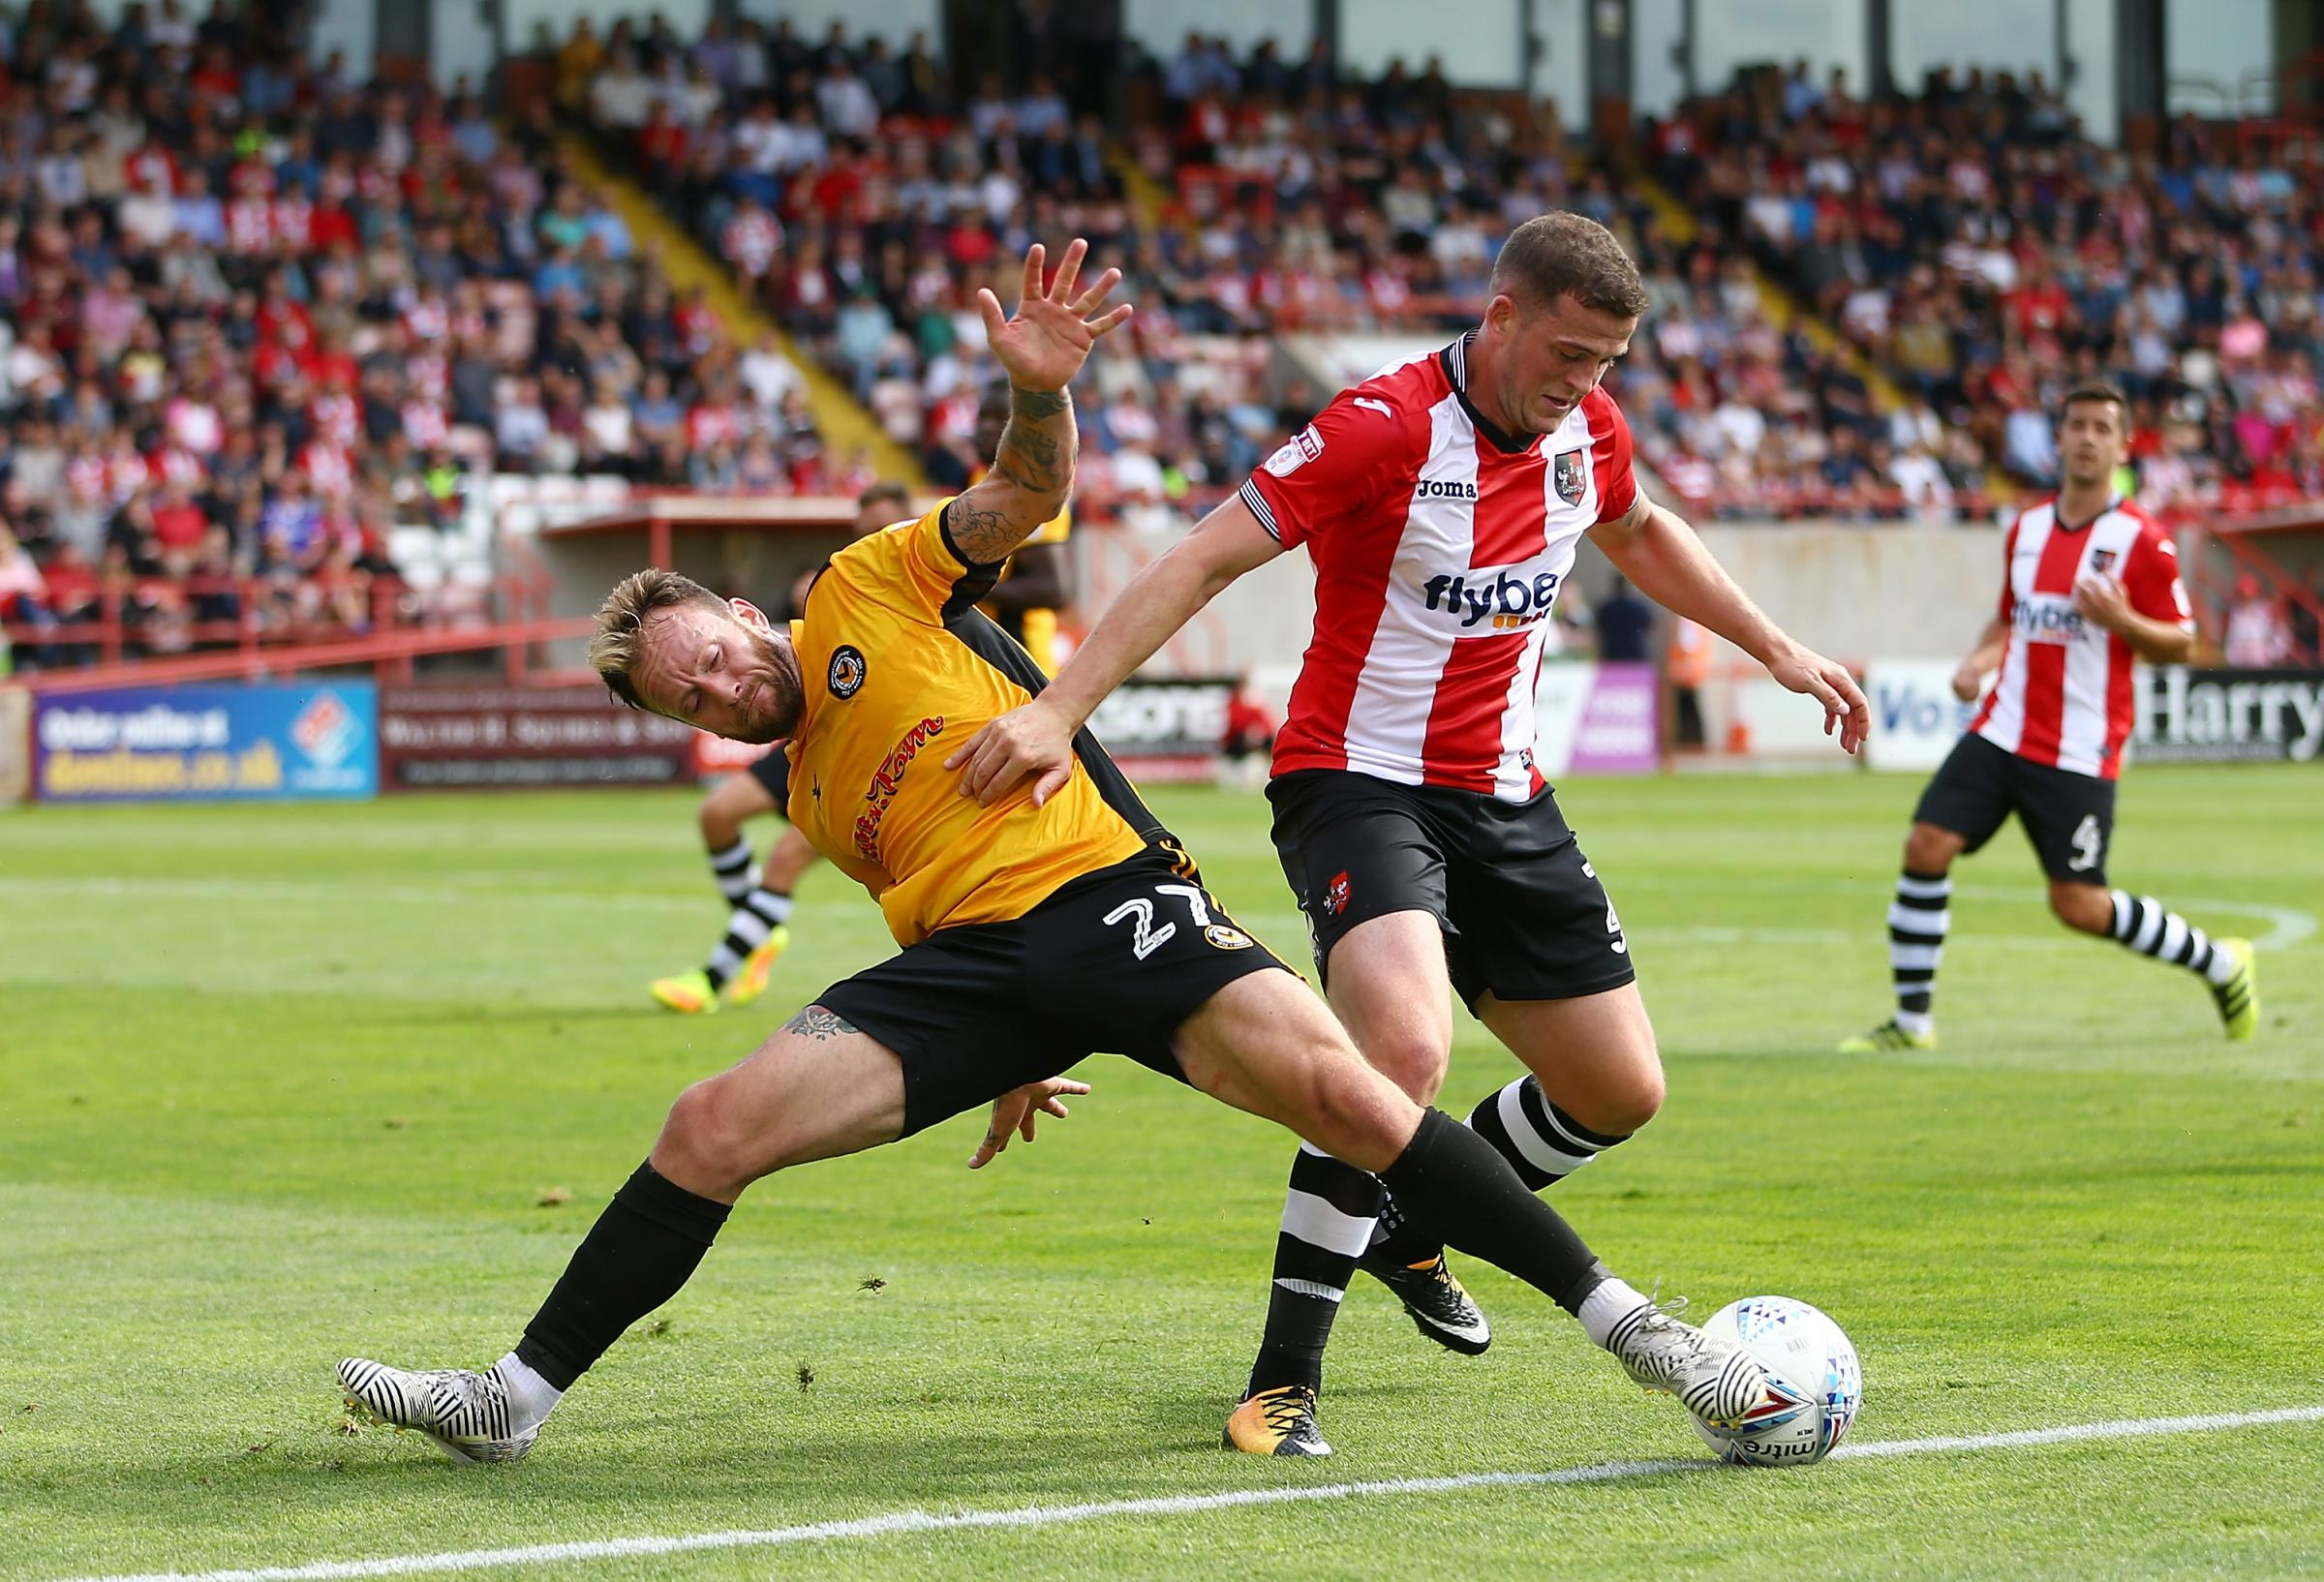 BATTLE: Newport County's Sean Rigg fights for the ball with Pierce Sweeney of Exeter City. Picture: Huw Evans Agency